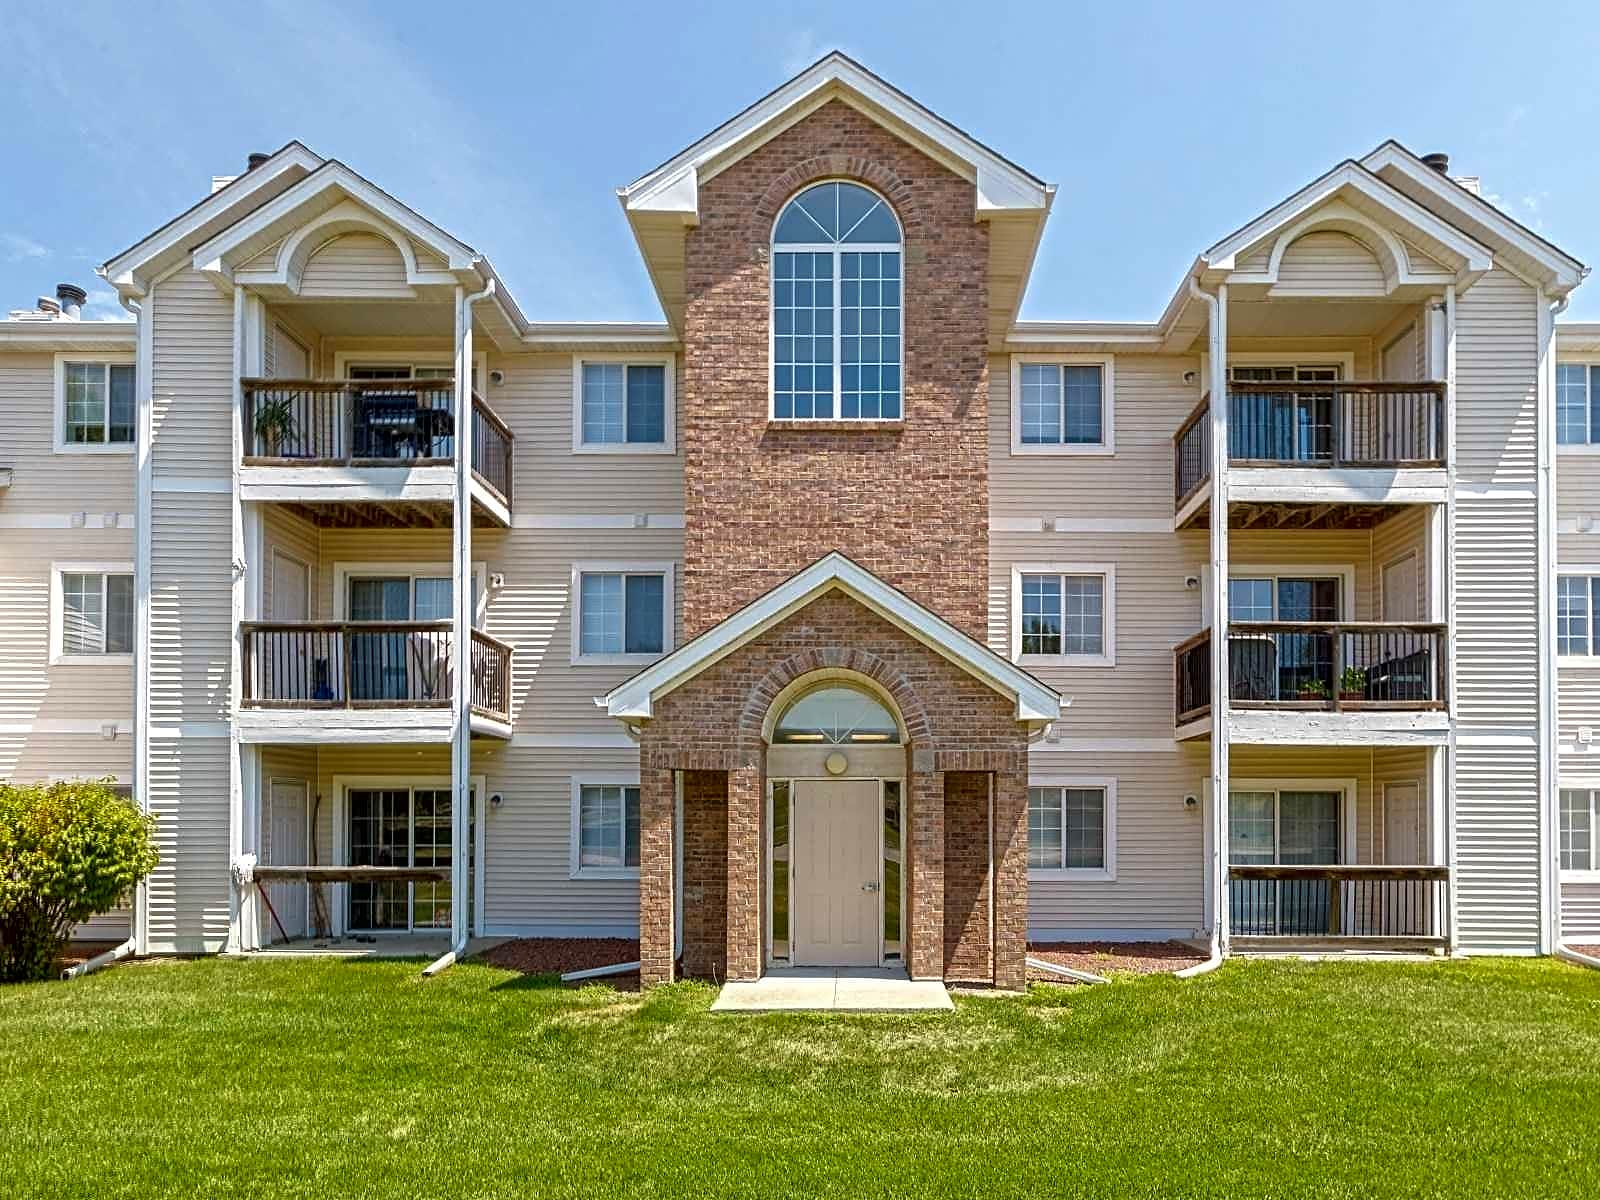 Apartments Near Aveda Institute-Des Moines Westbrooke Apartments for Aveda Institute-Des Moines Students in West Des Moines, IA